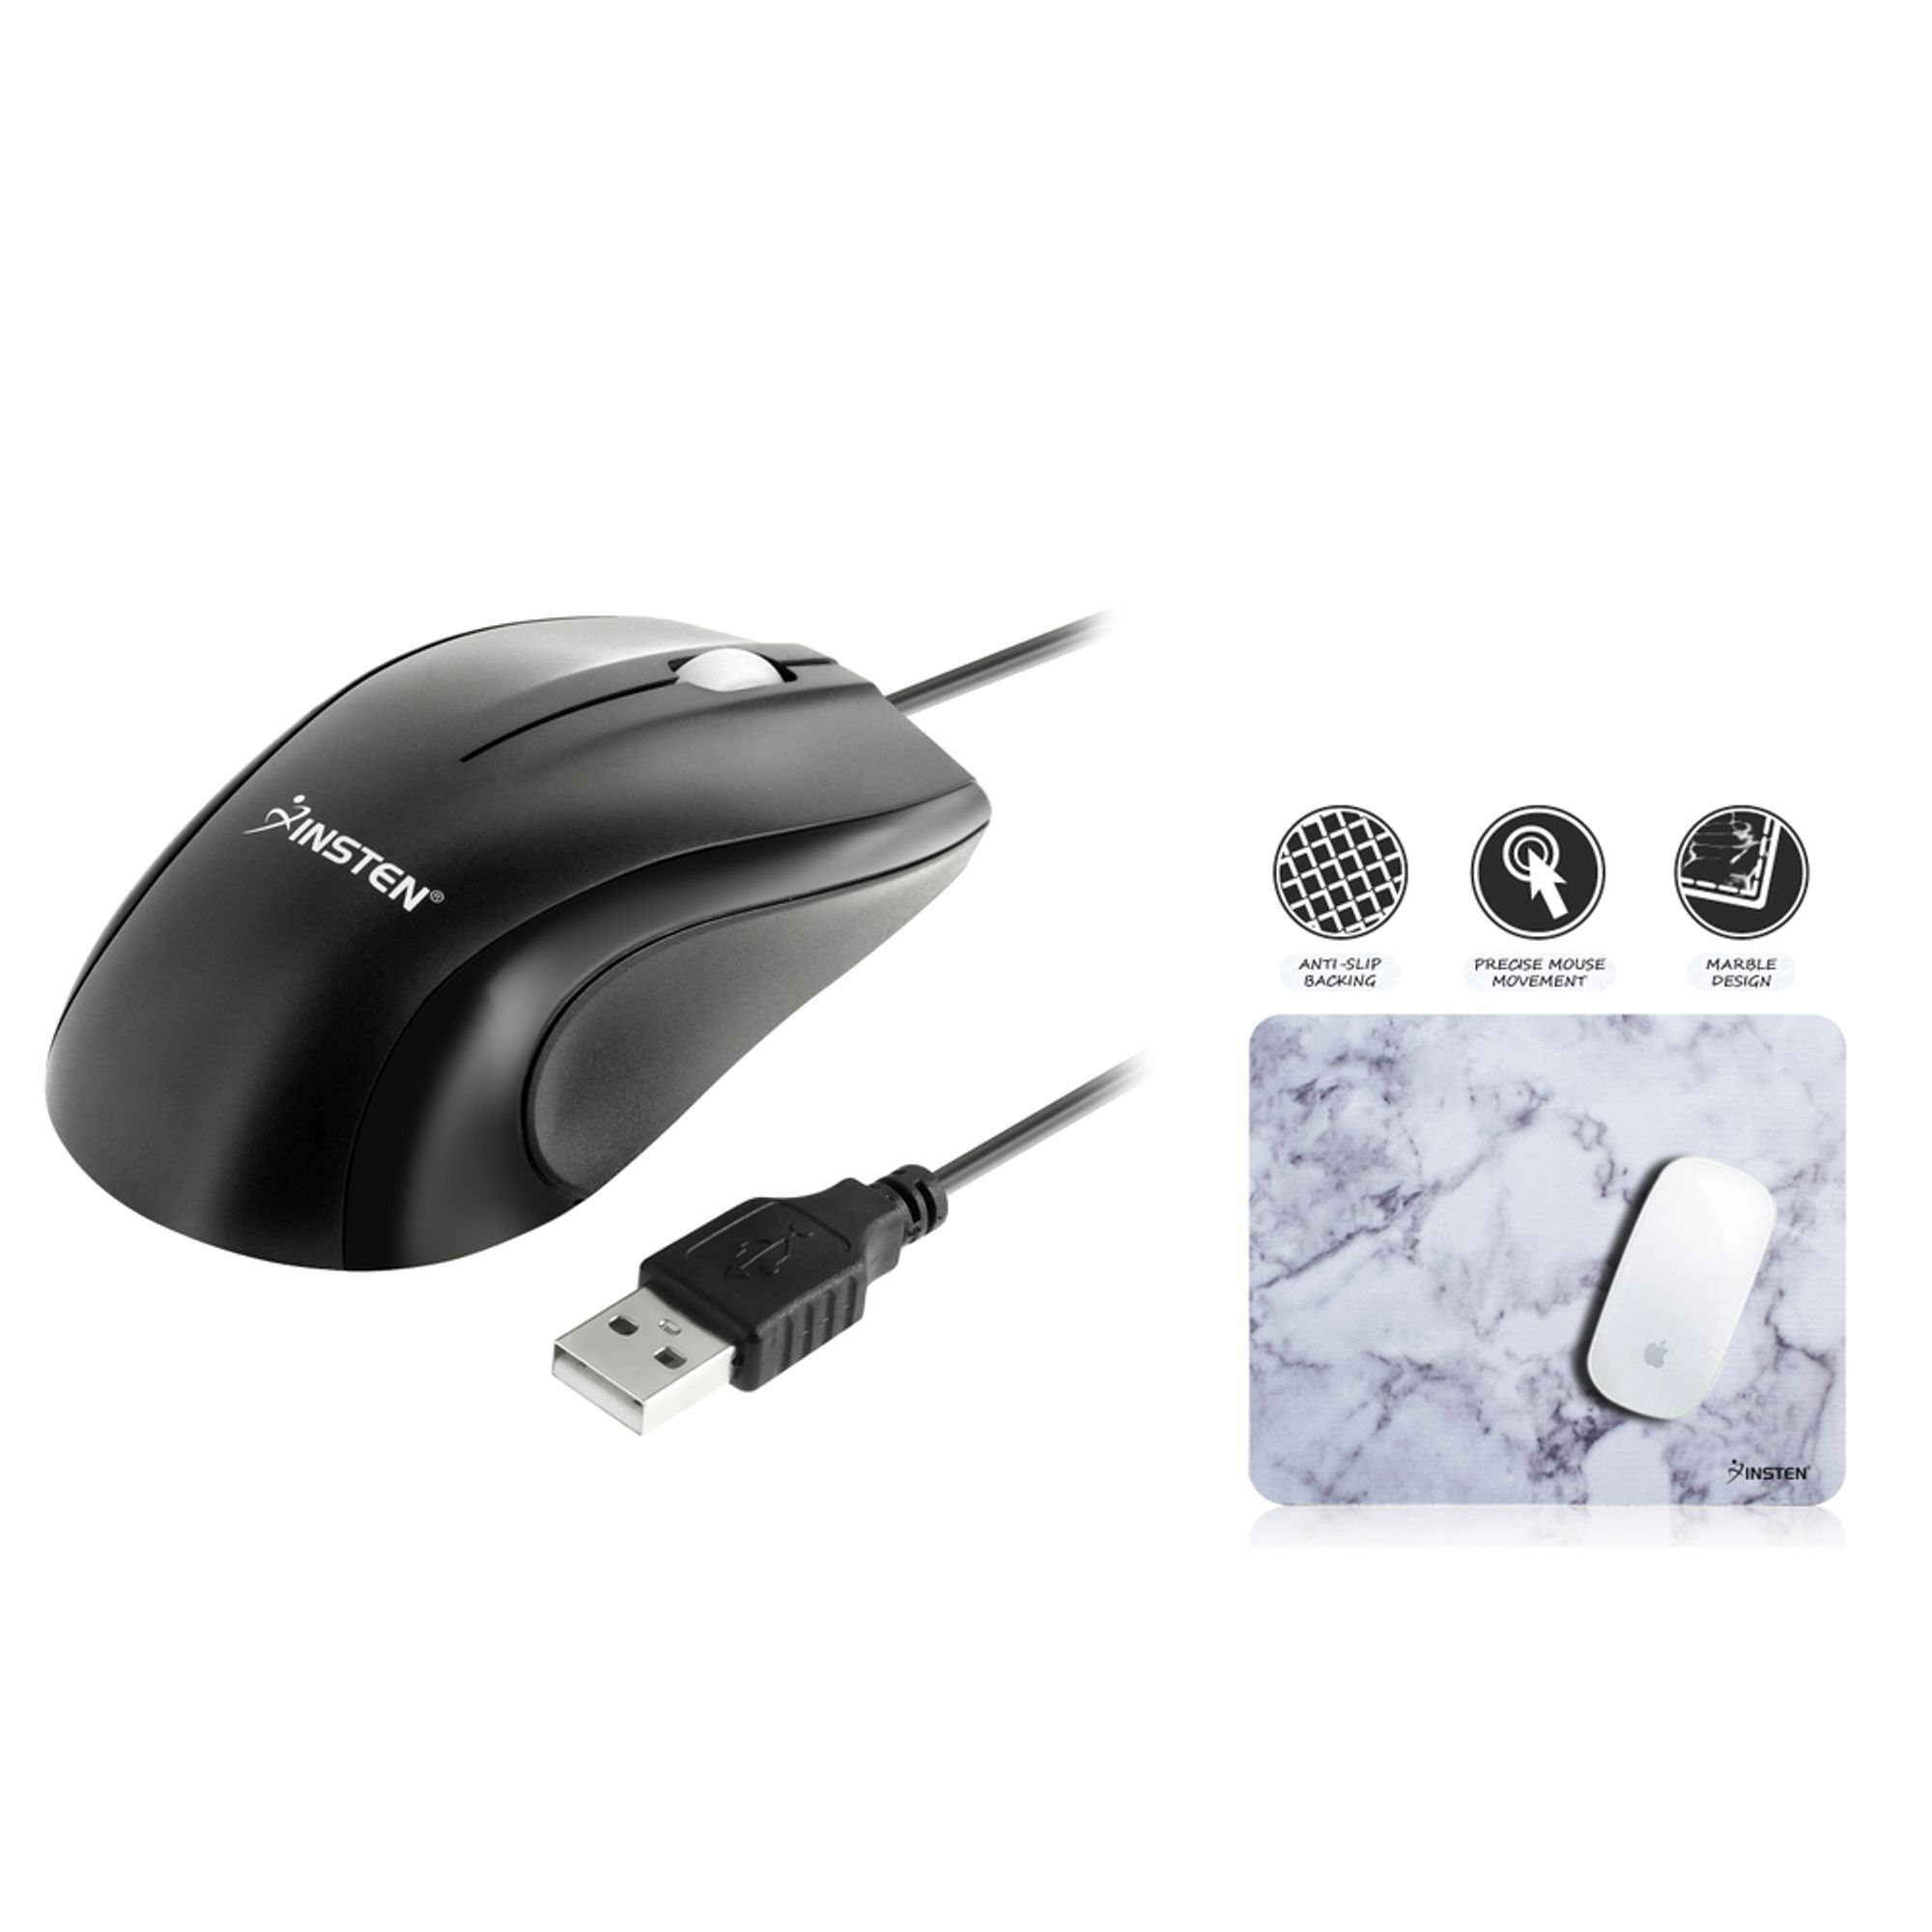 Insten Optical Mouse Black USB Scroll Wheel + Laptop Mouse Pad White Marble